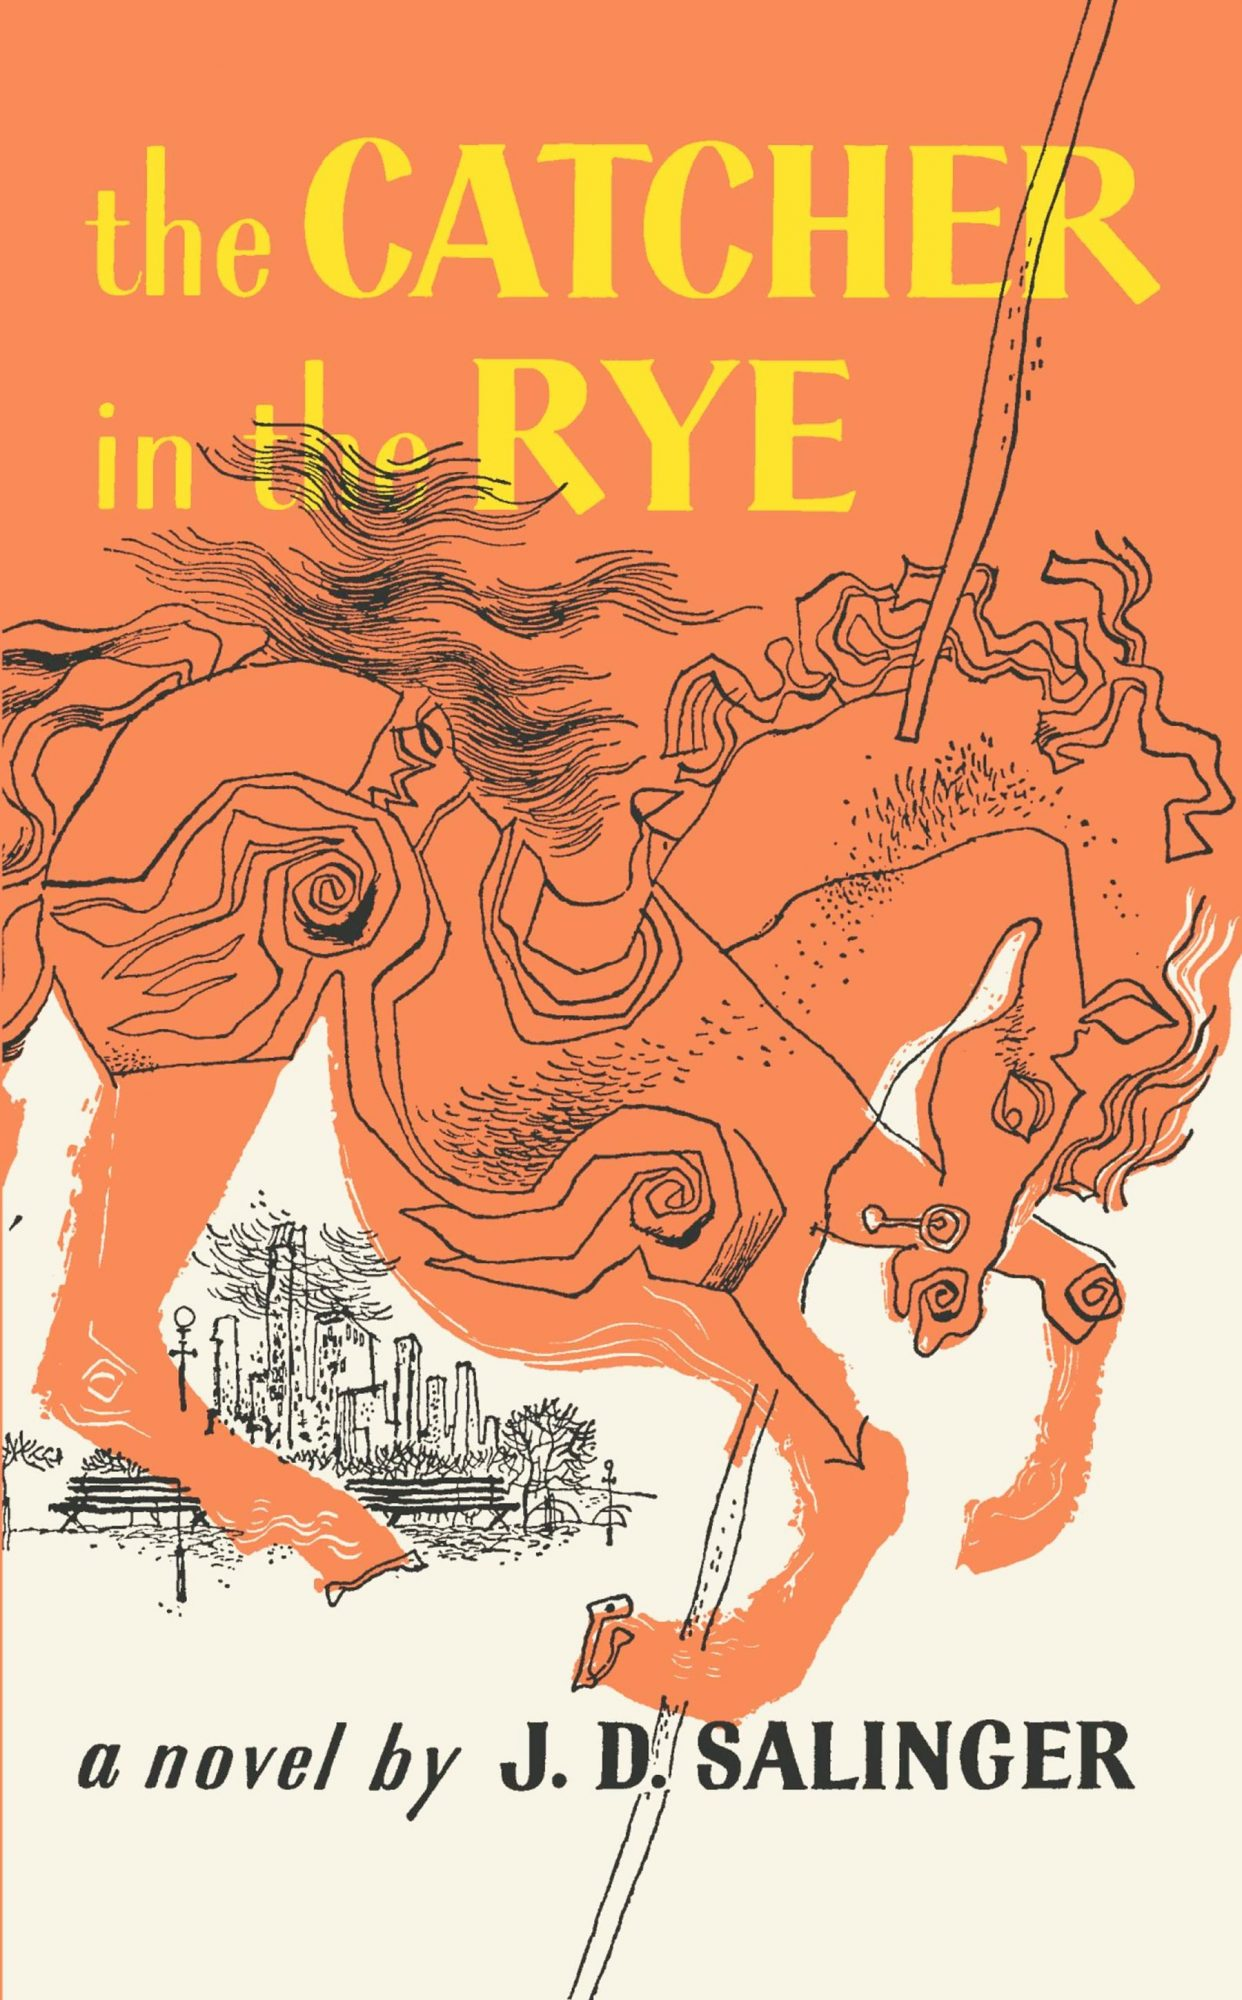 THE CATCHER IN THE RYE by J.D. Salinger CR: Little, Brown Books